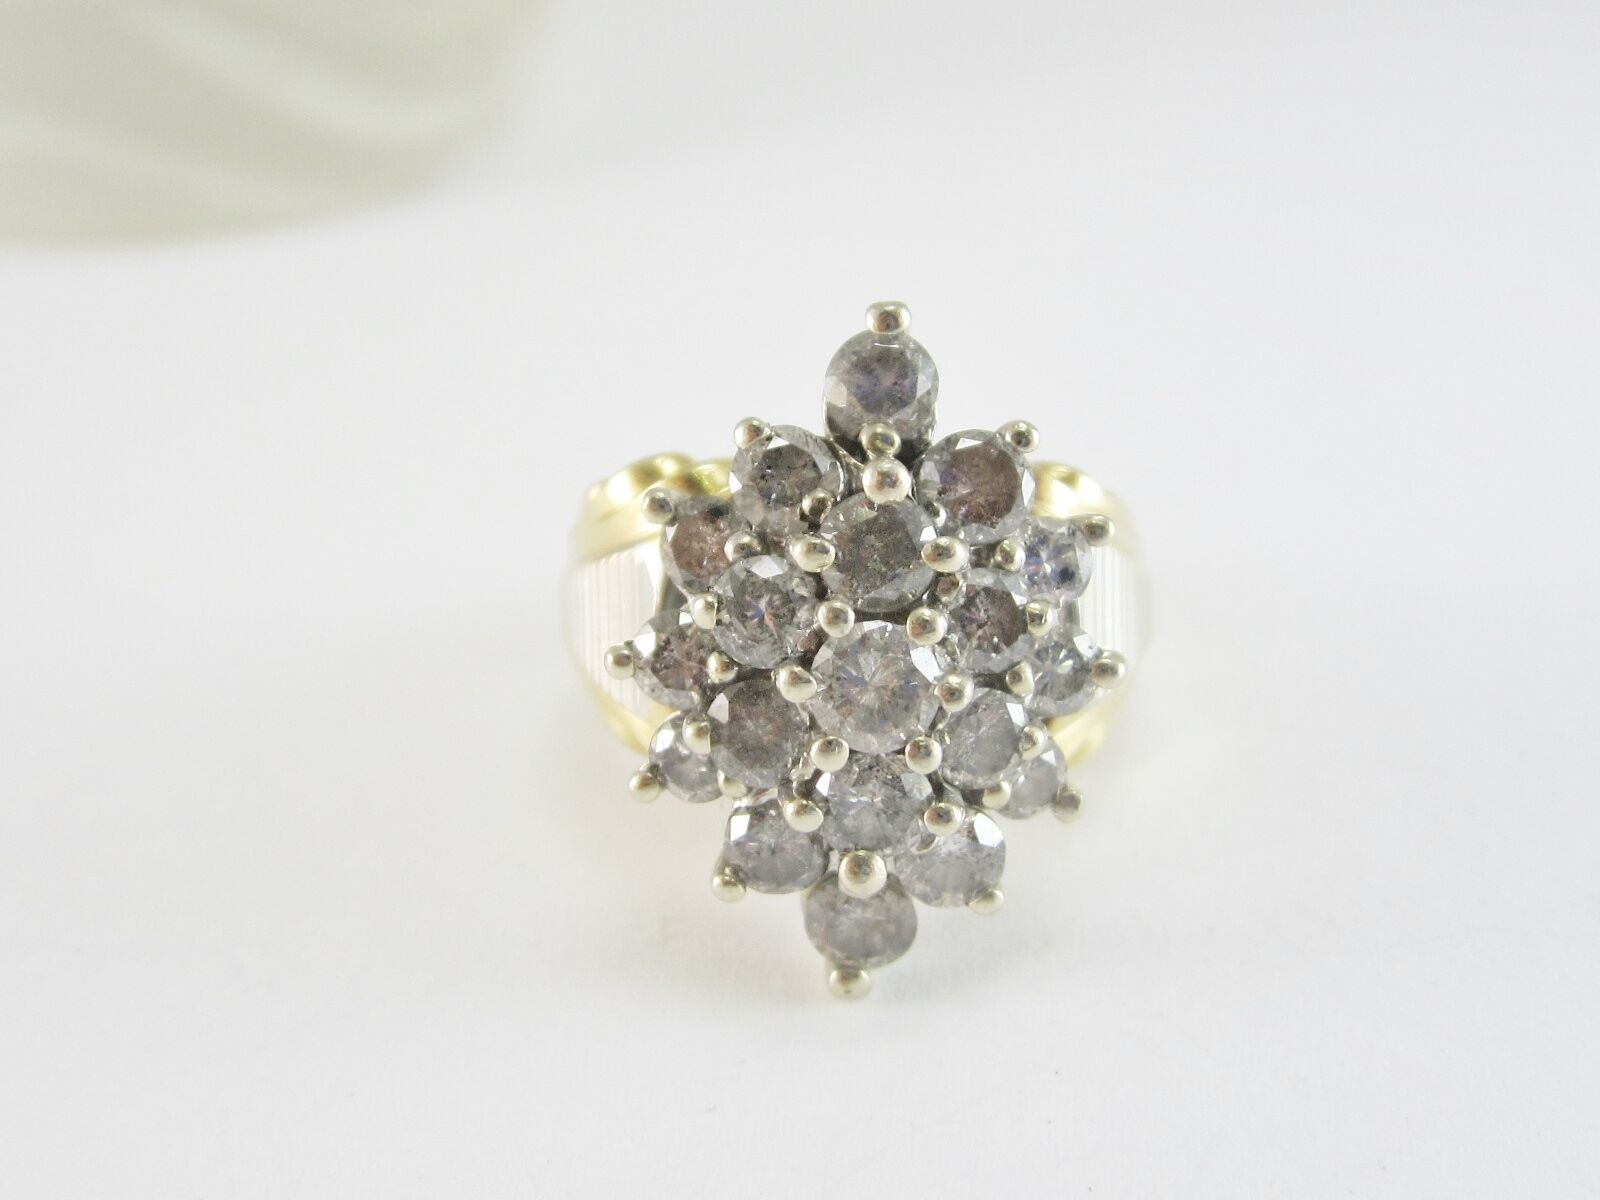 BEAUTIFUL LADIES 10K TWO-TONE gold CLUSTER STYLE DIAMOND RING 9.4G 2.68CT